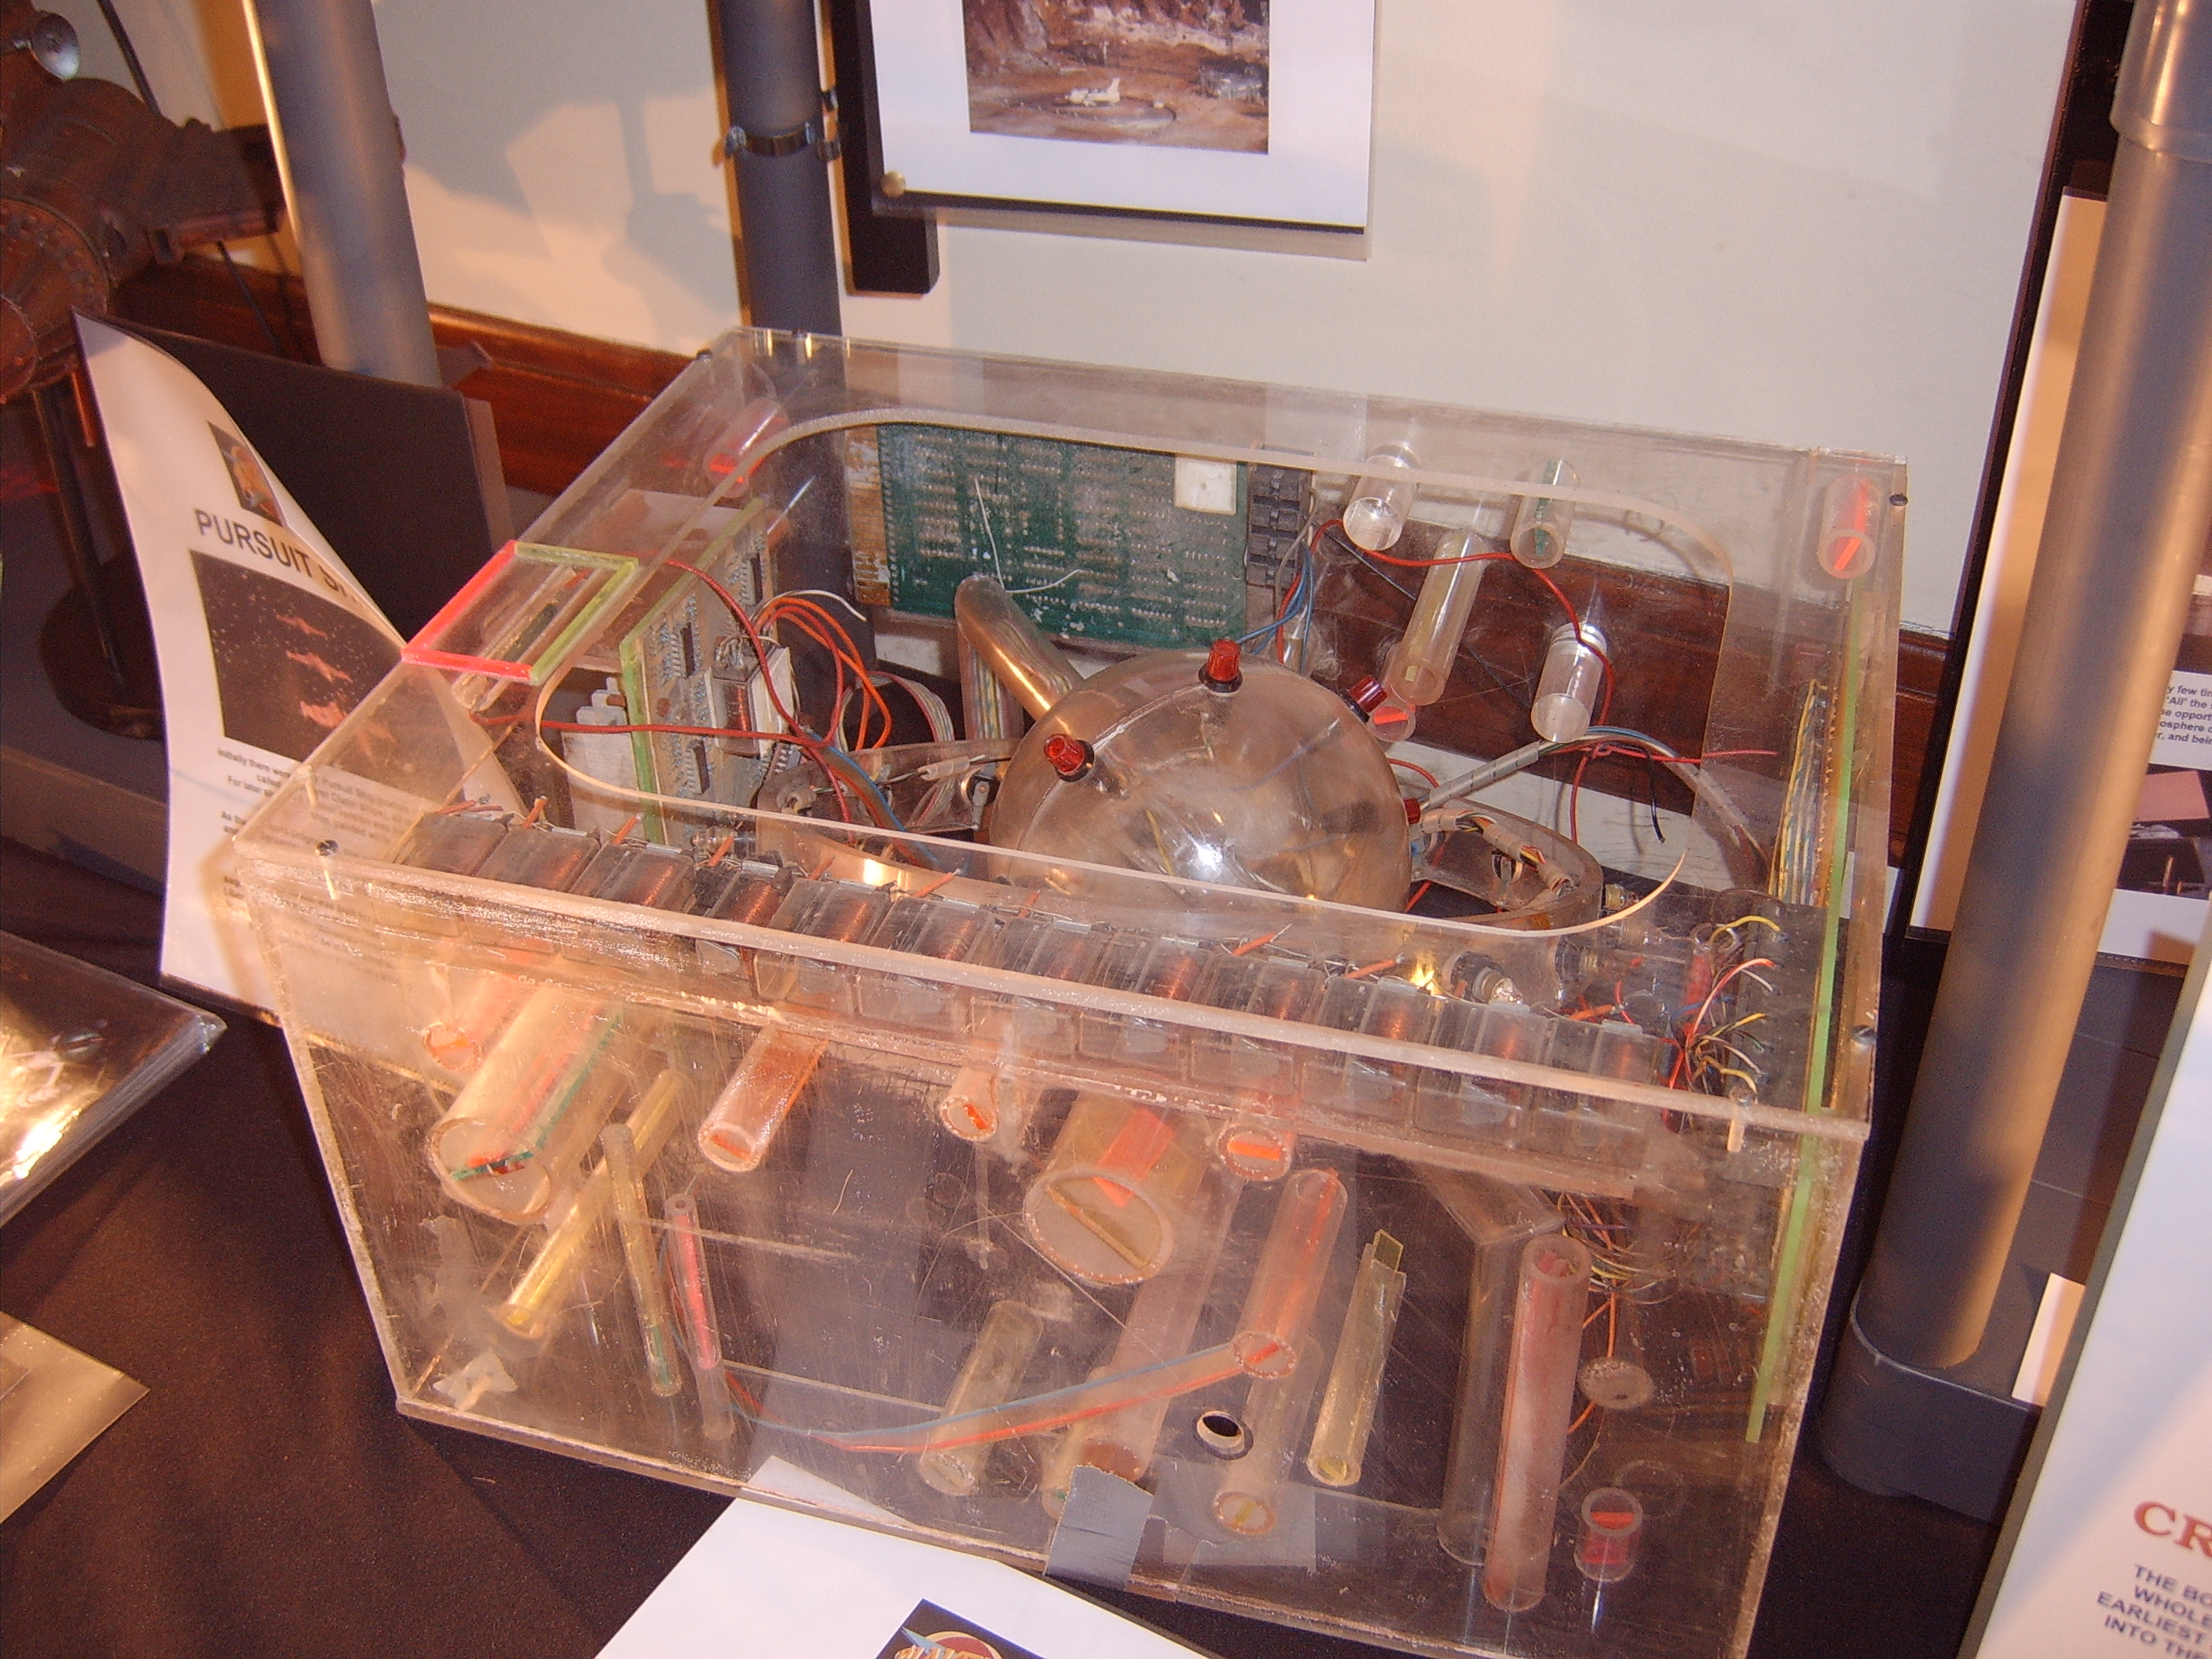 https://upload.wikimedia.org/wikipedia/commons/b/b7/Orac.jpg